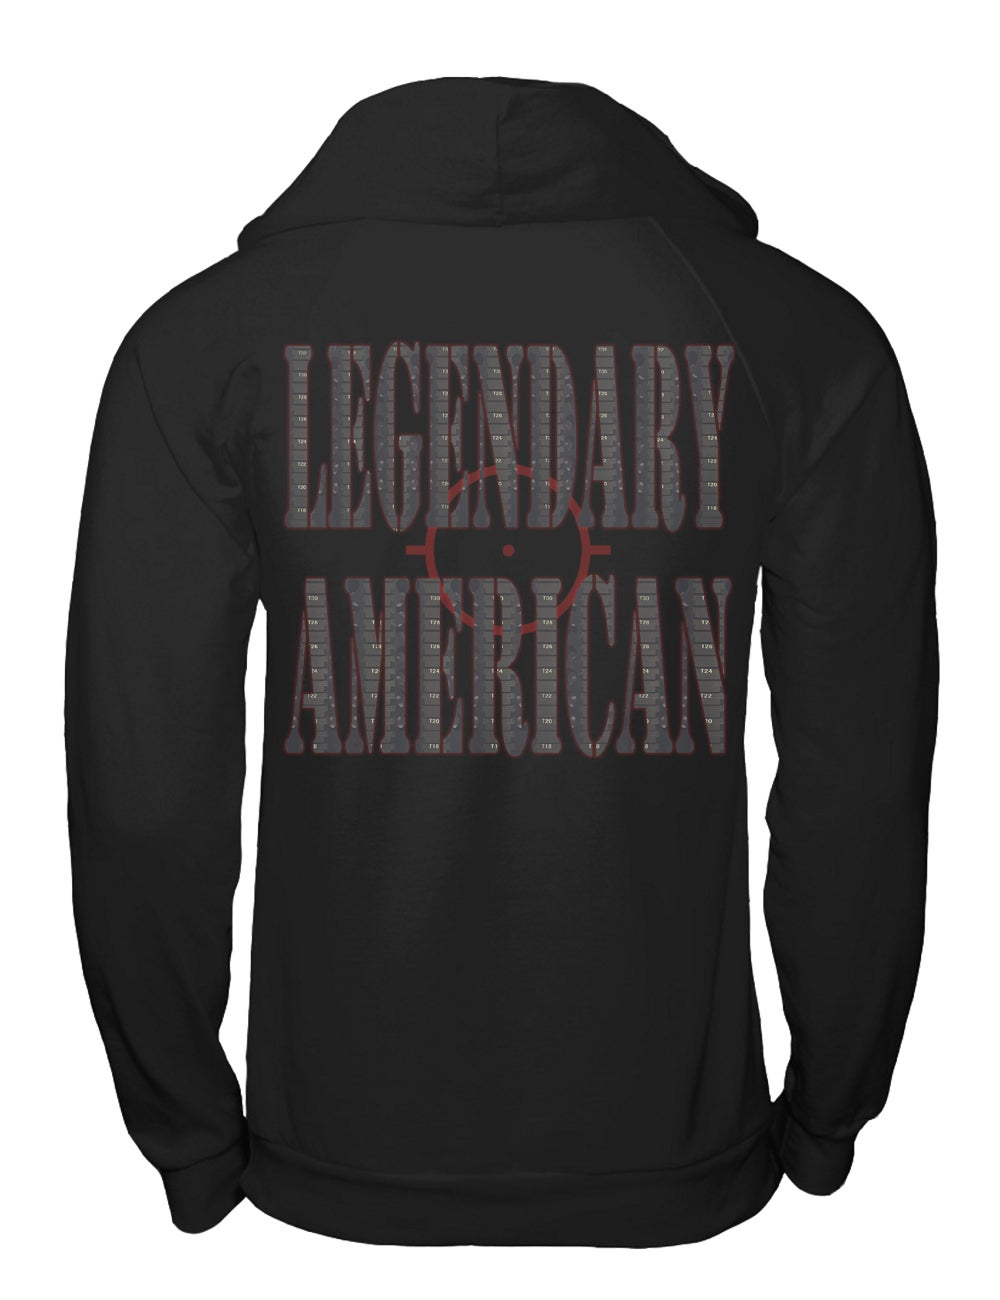 Image of Legendary American M4 pullover hoodie